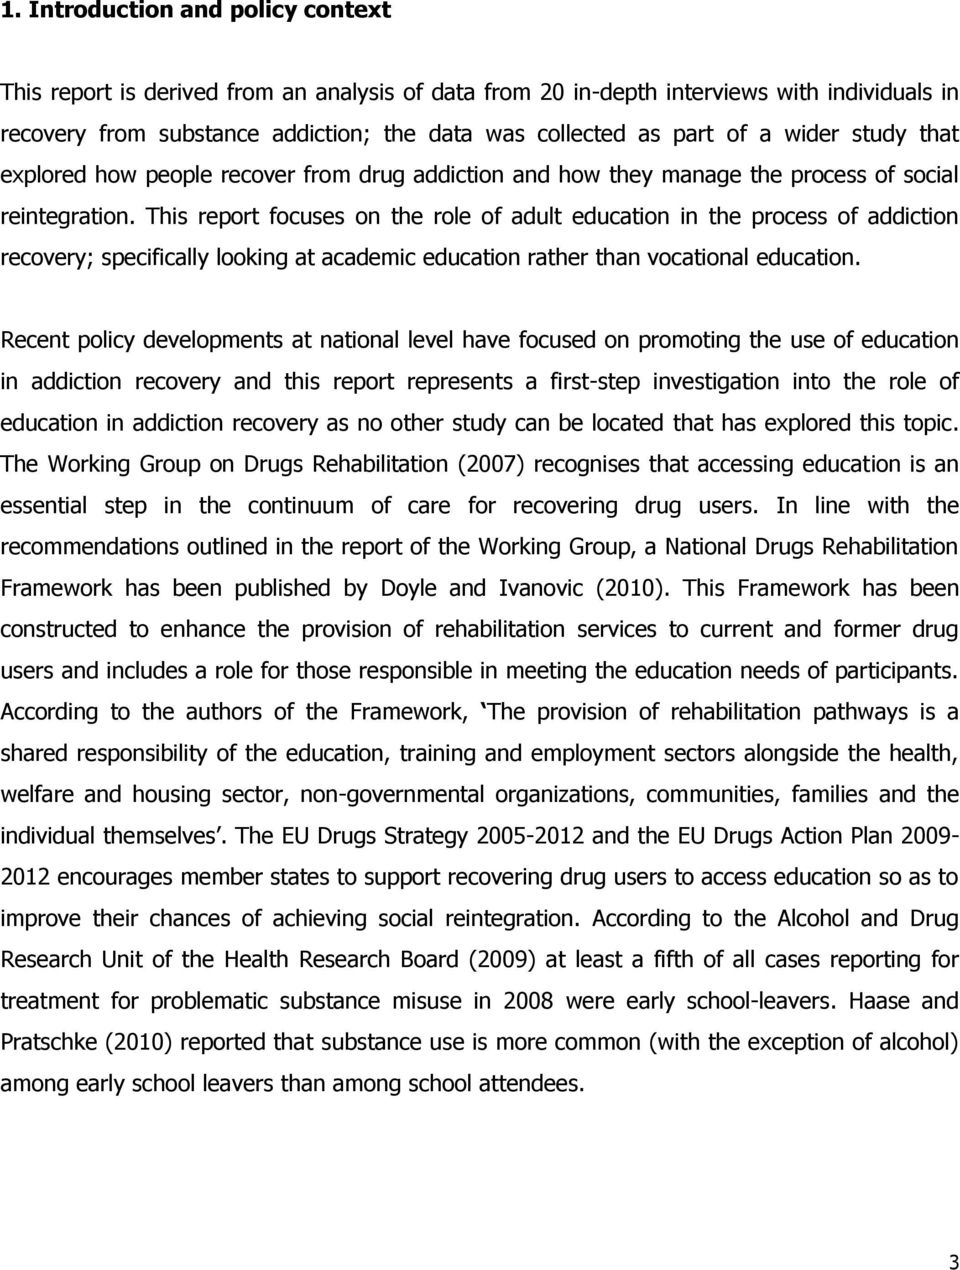 This report focuses on the role of adult education in the process of addiction recovery; specifically looking at academic education rather than vocational education.